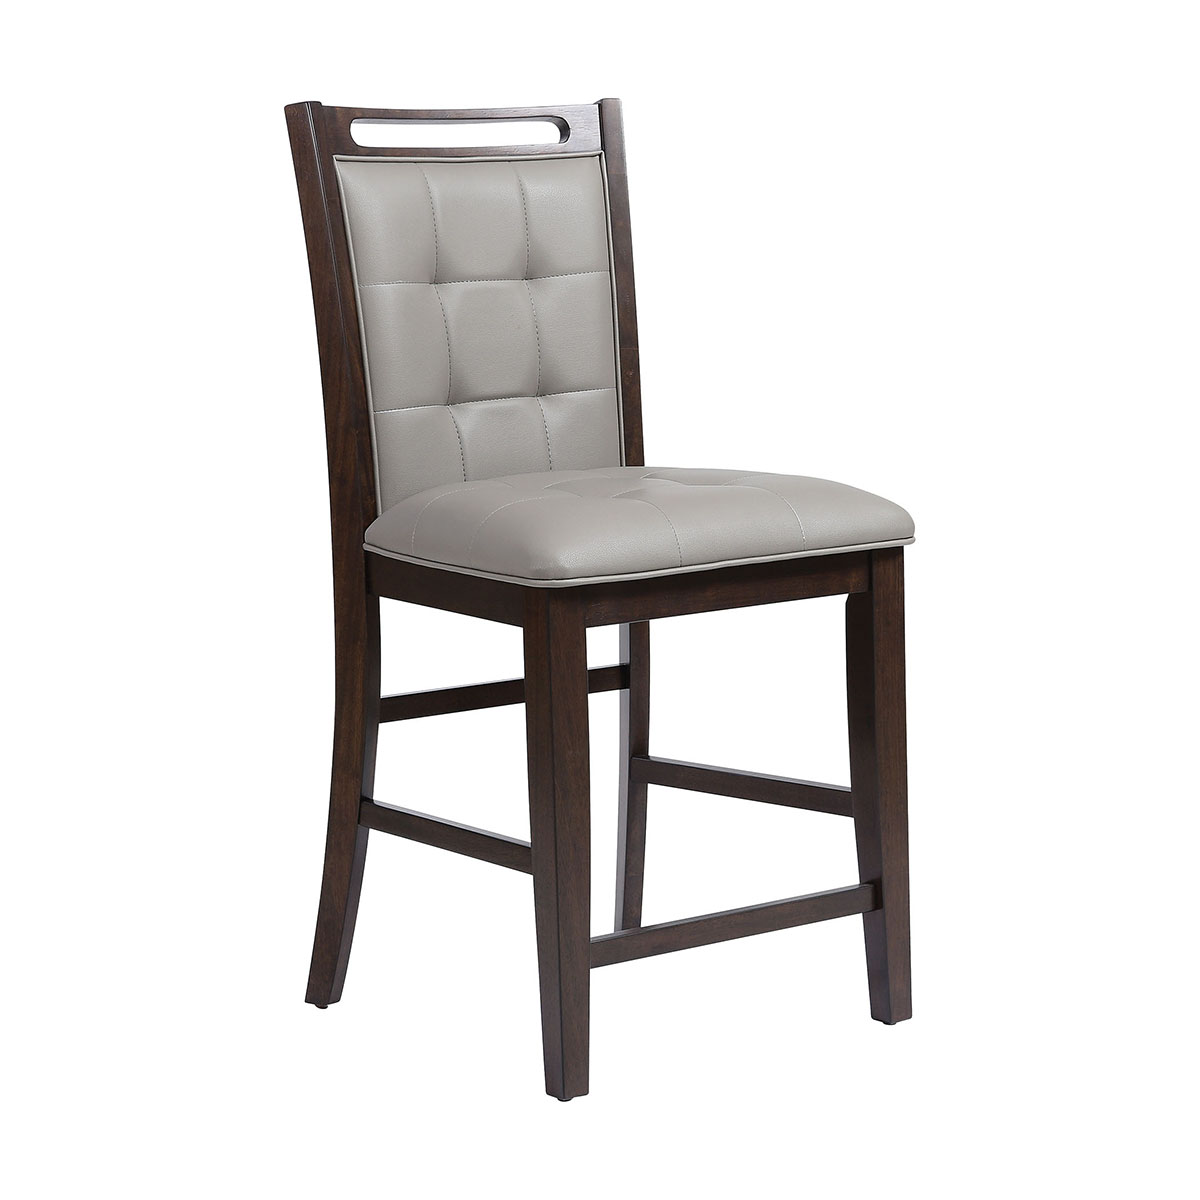 Lyman Grey Faux Leather Fabric. Rubber Wood in Arabica Finish Counter Stool | Stein World